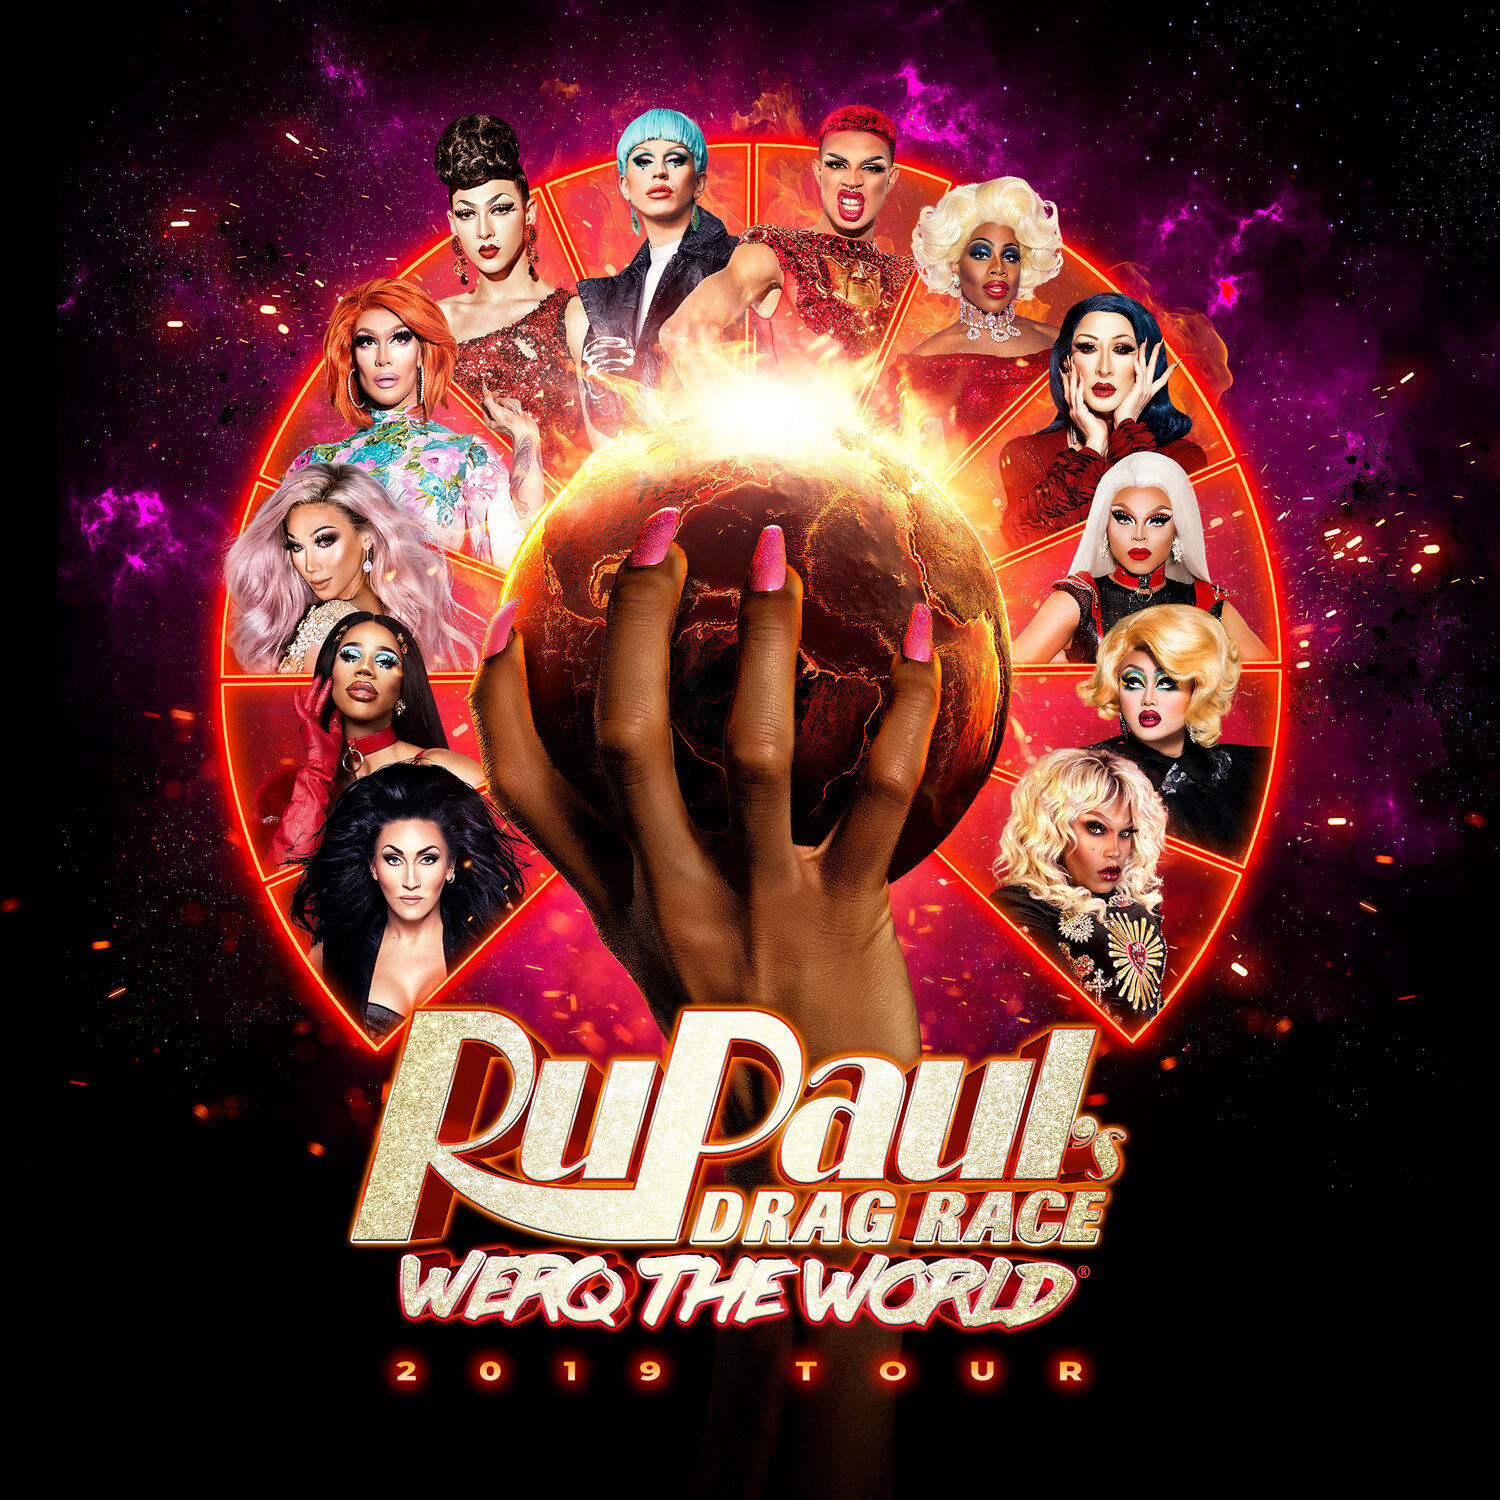 RPDR-WTW-2019-NEW-CAST-FULL-FINAL-SQUARE.jpg